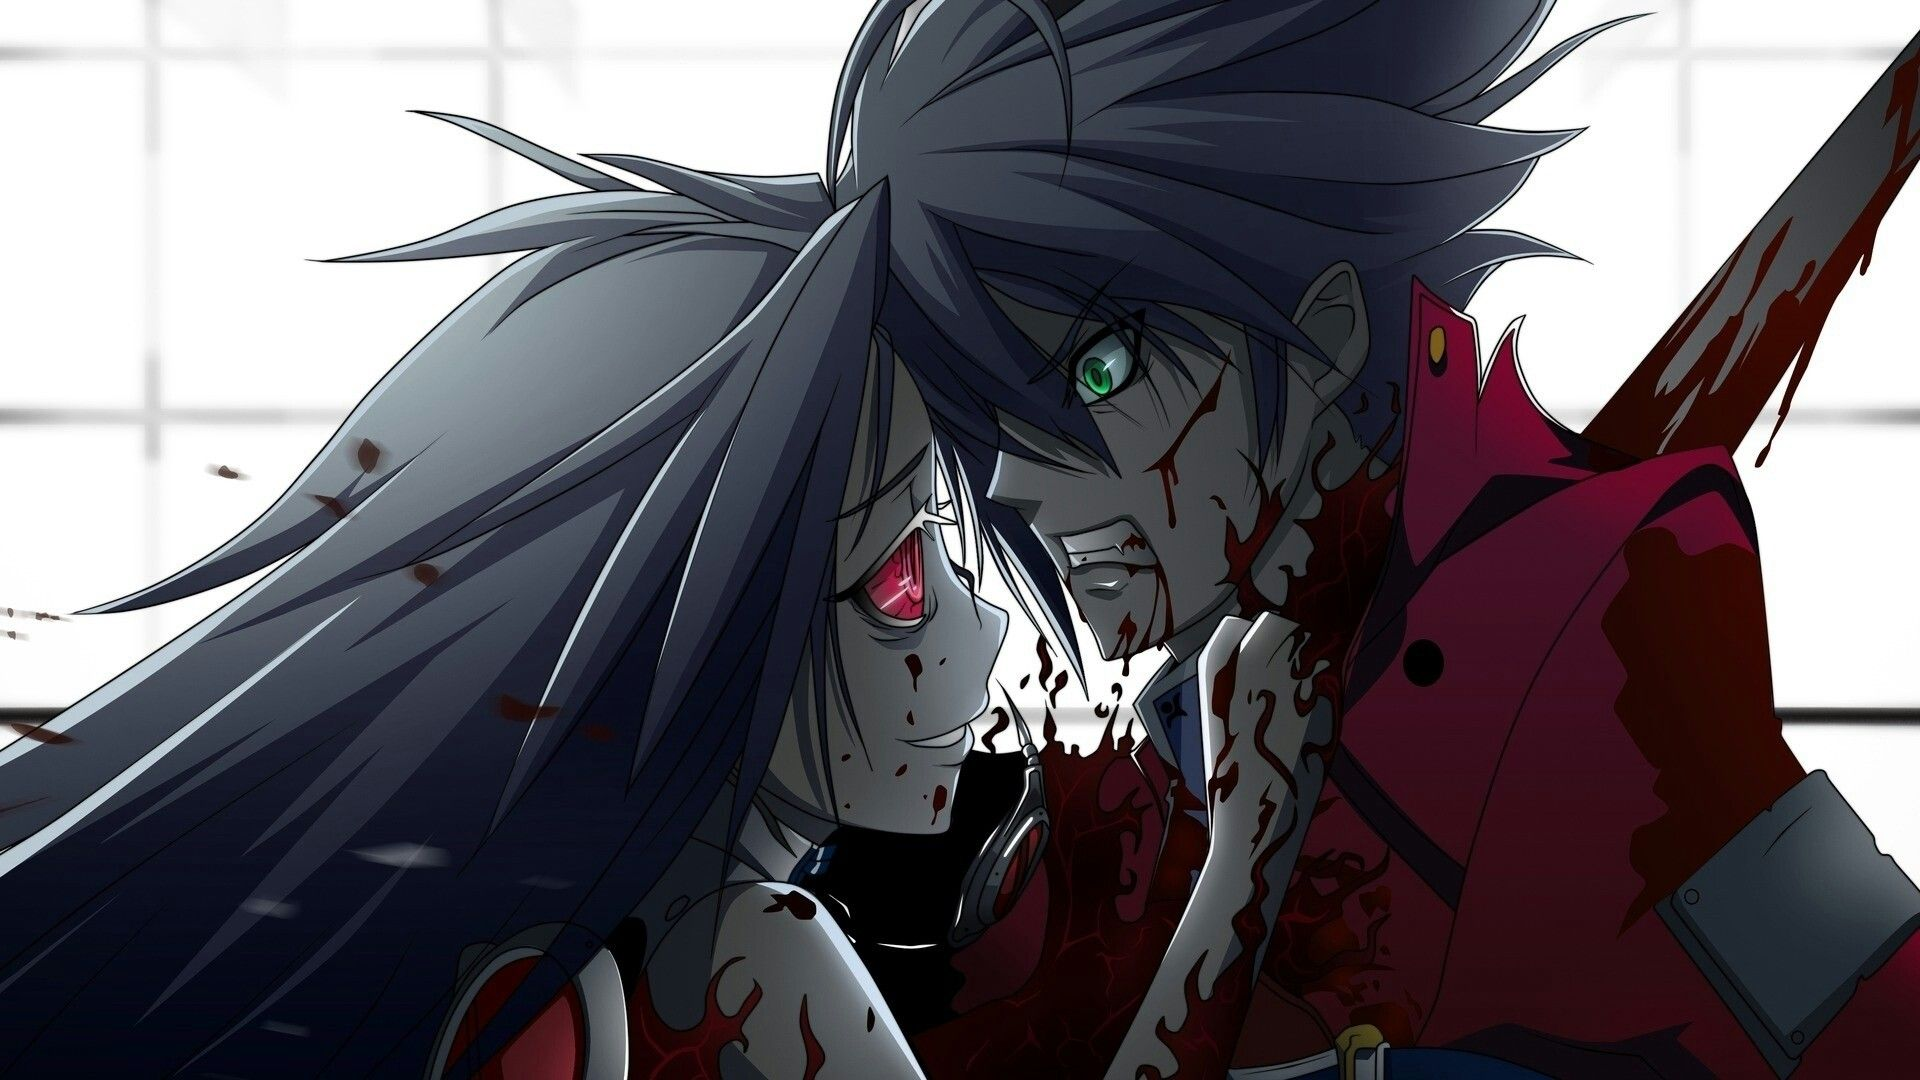 I love blood 00splatter anime blutige anime figur